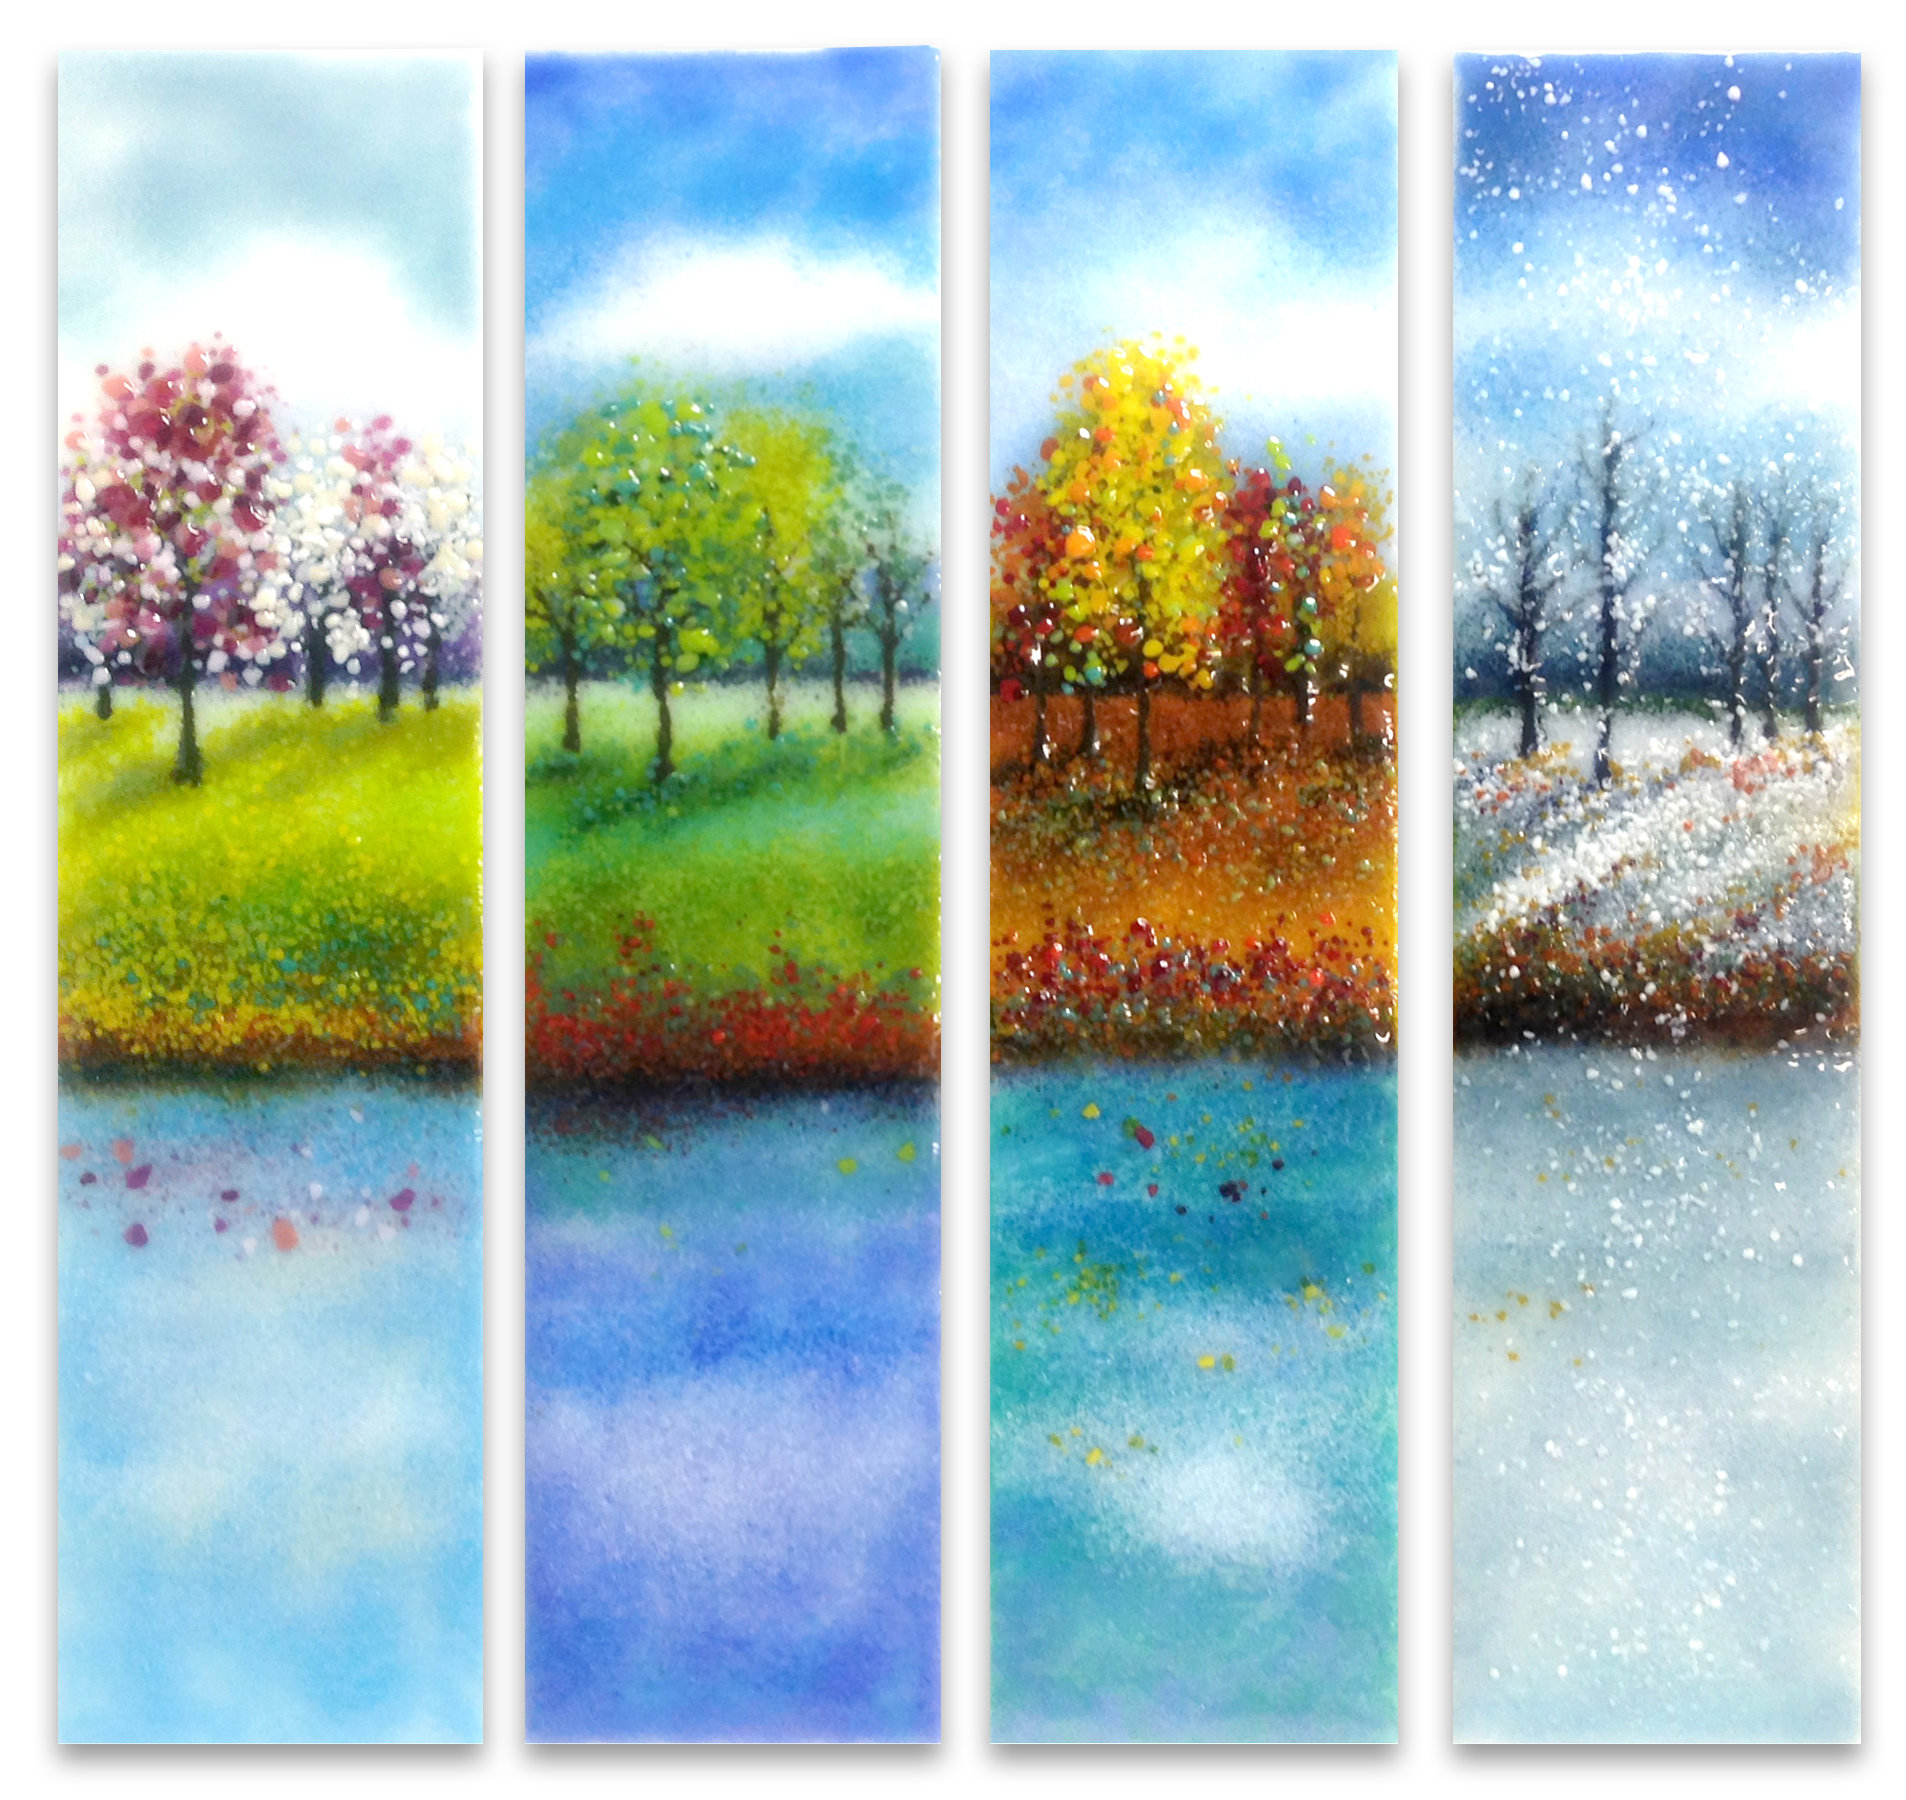 Four seasons glass wall art by anne nye art glass wall for Large glass walls